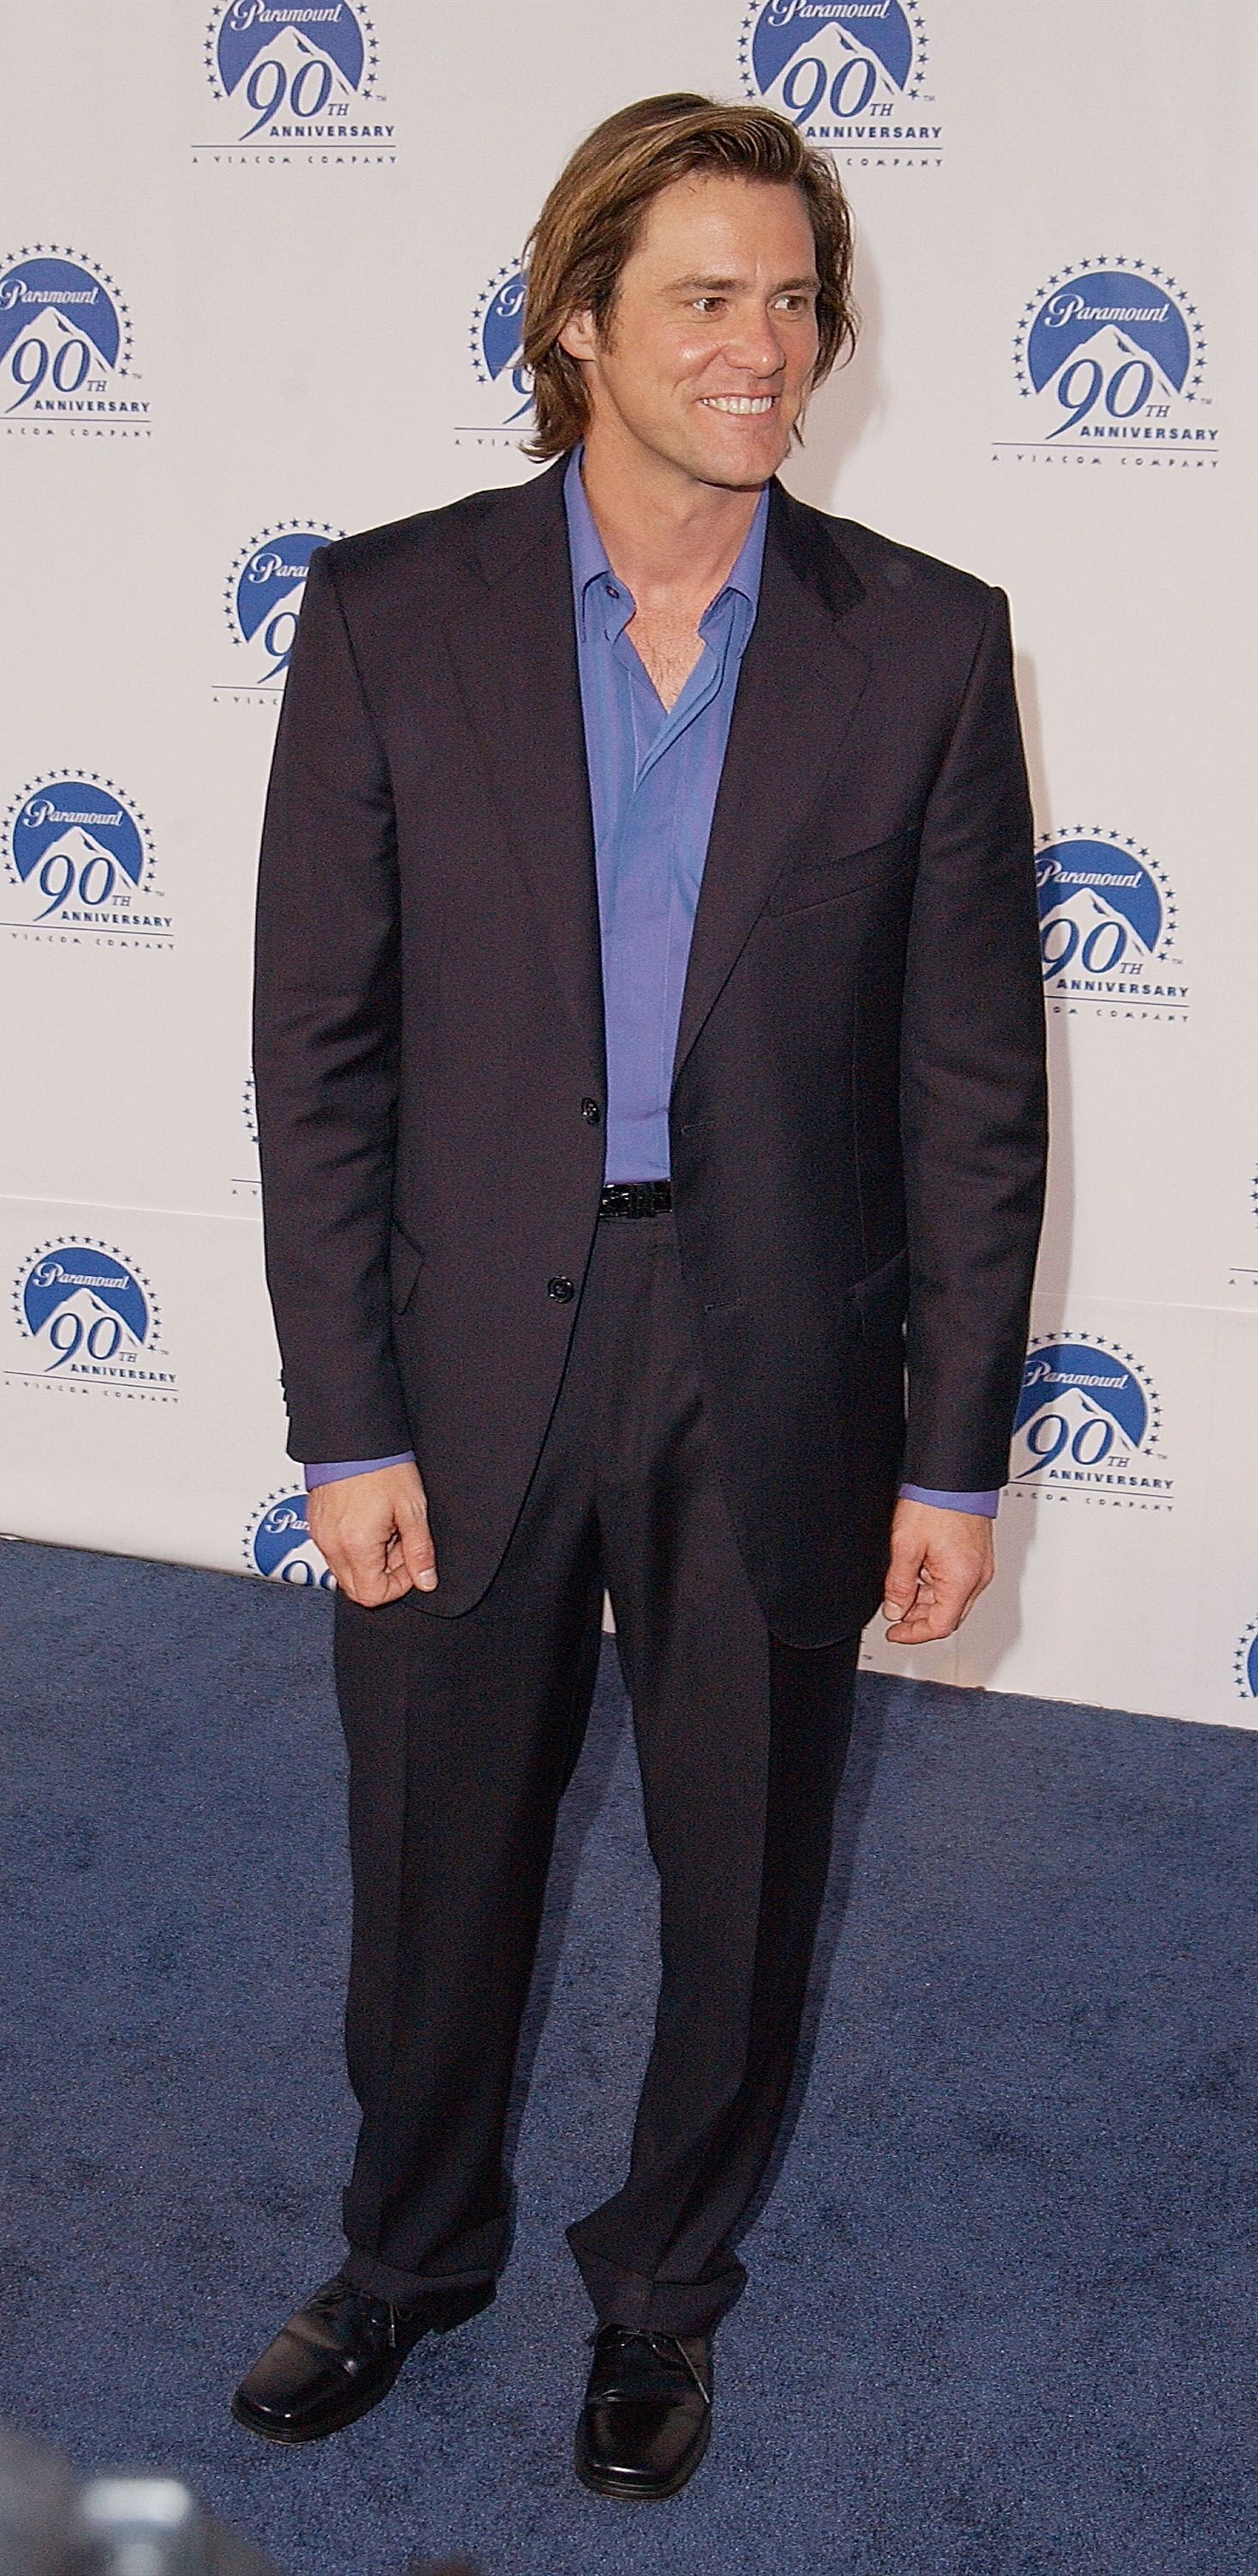 "Jim Carrey attends Paramount Pictures' ""90 Stars for 90 Years"" Anniversary Celebration at the Paramount Pictures Studios in 2012 